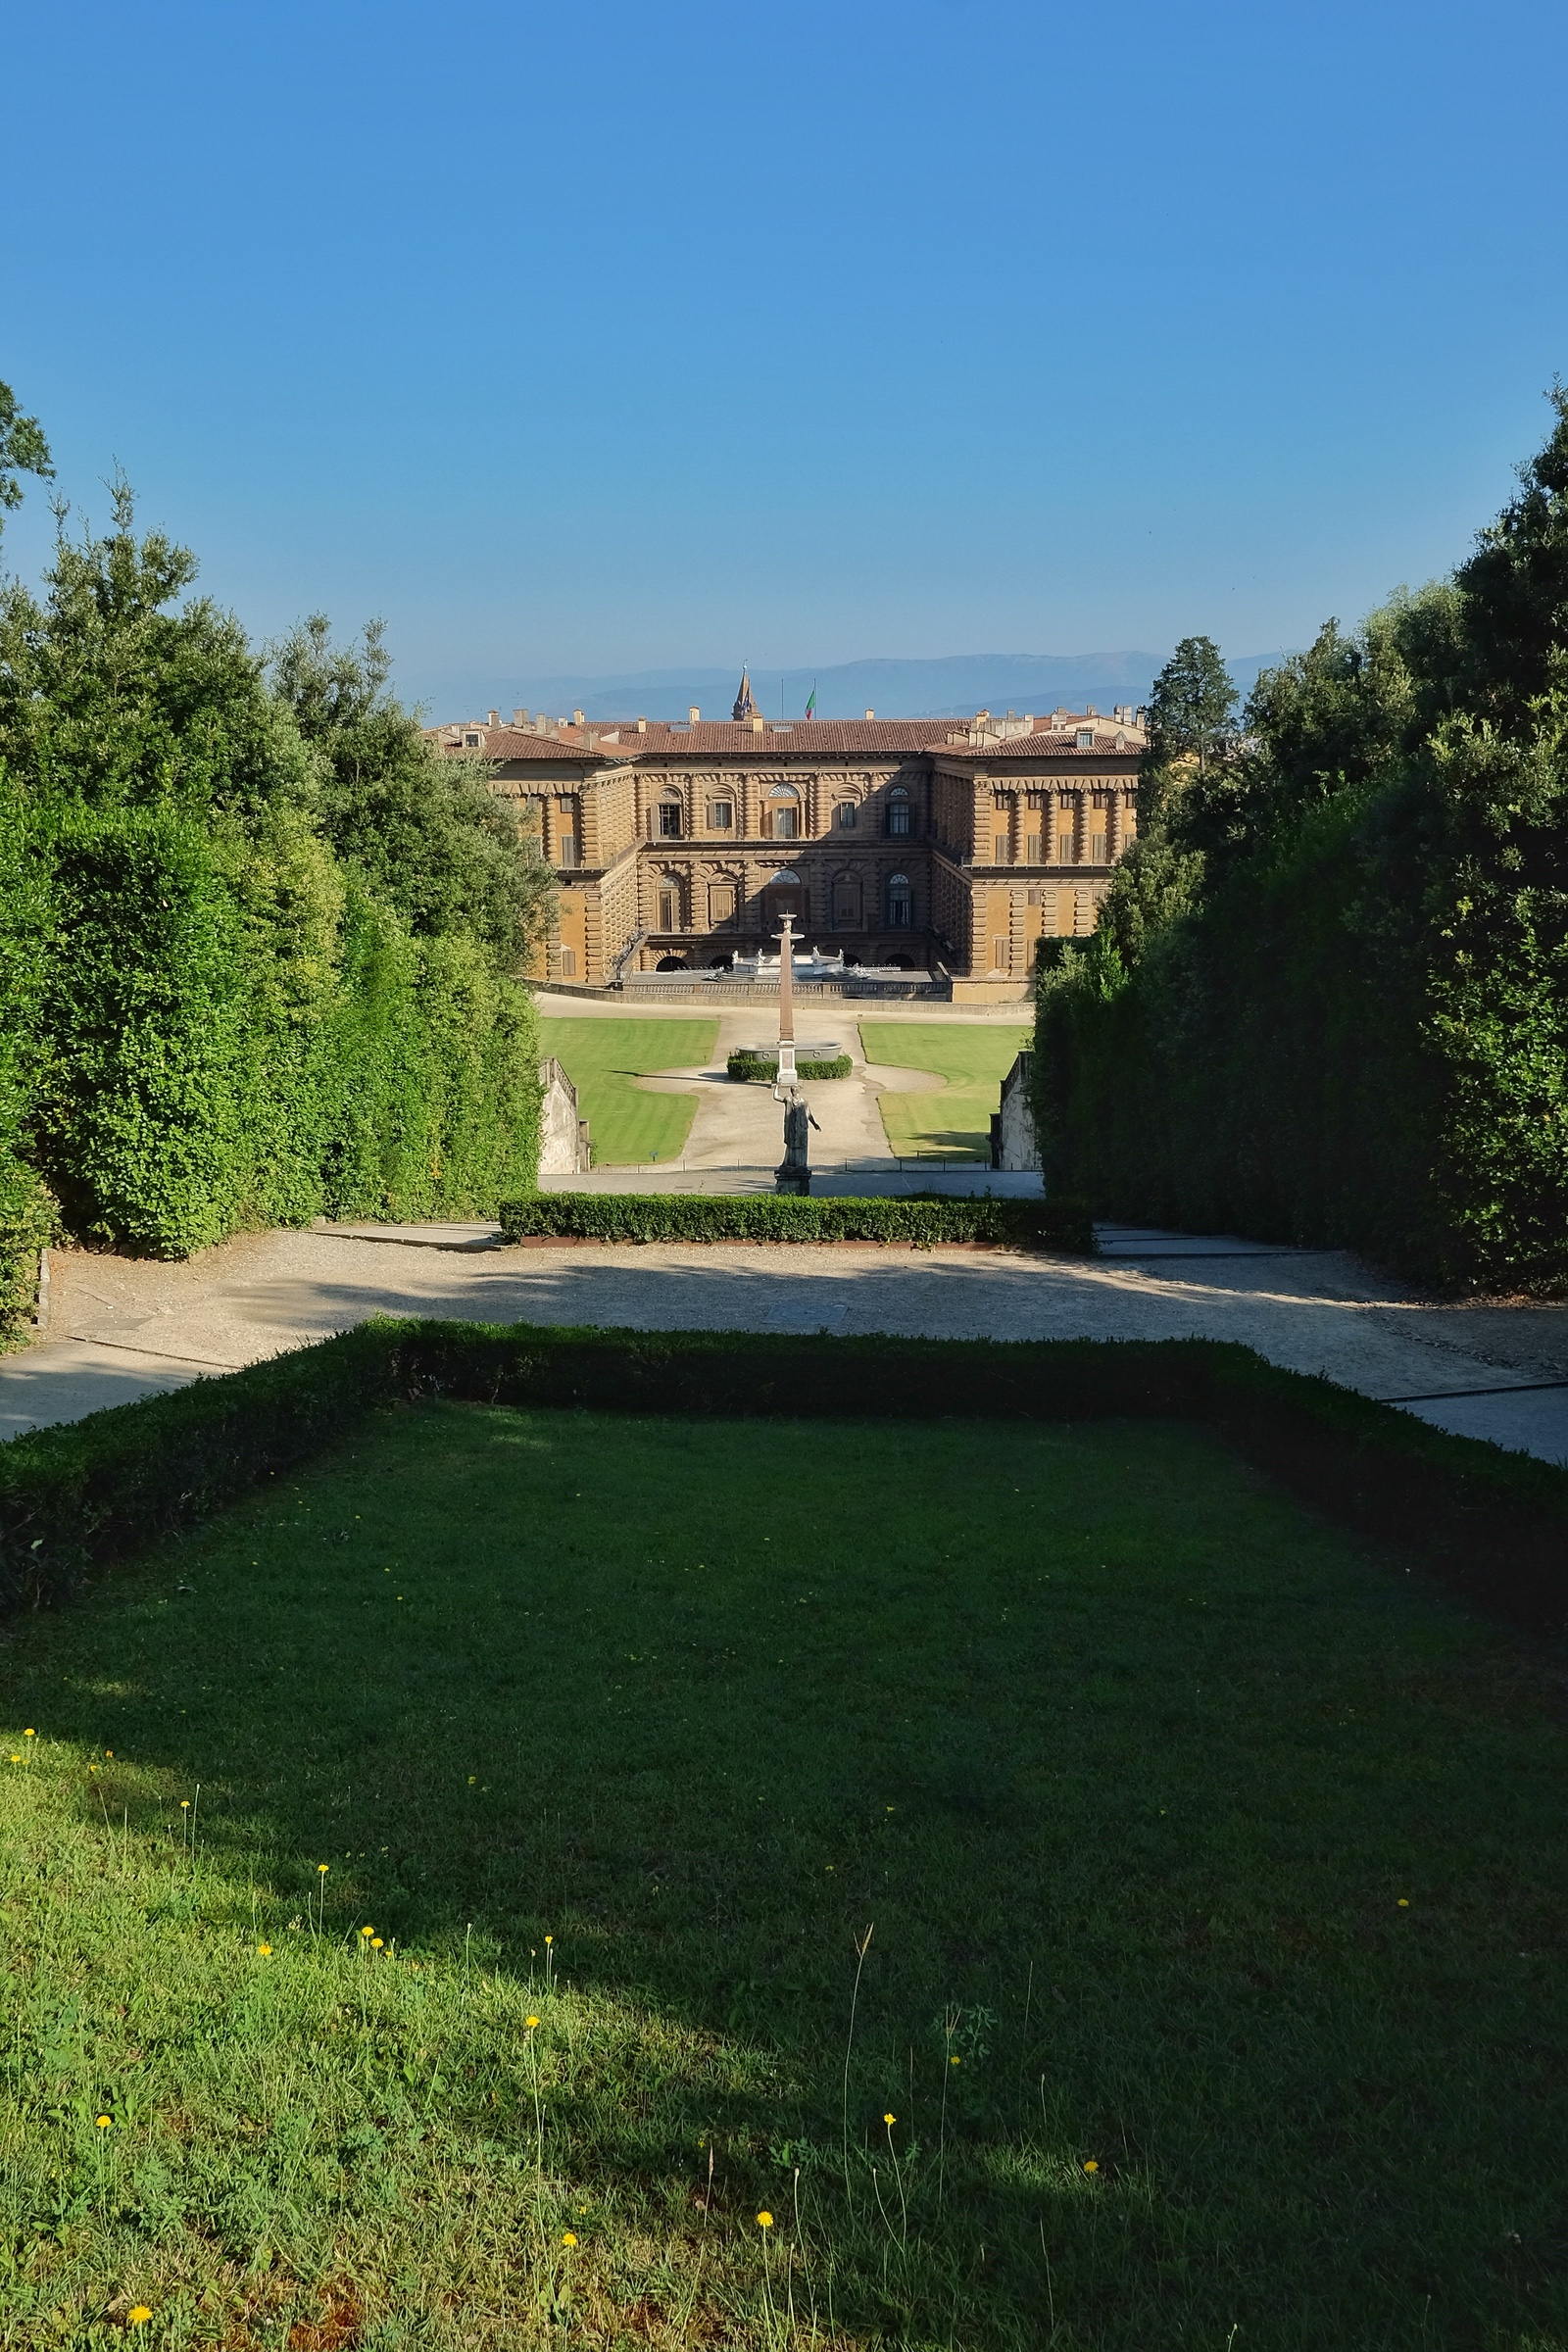 Looking towards the Pitti Palace from the gorgeous Boboli Gardens.